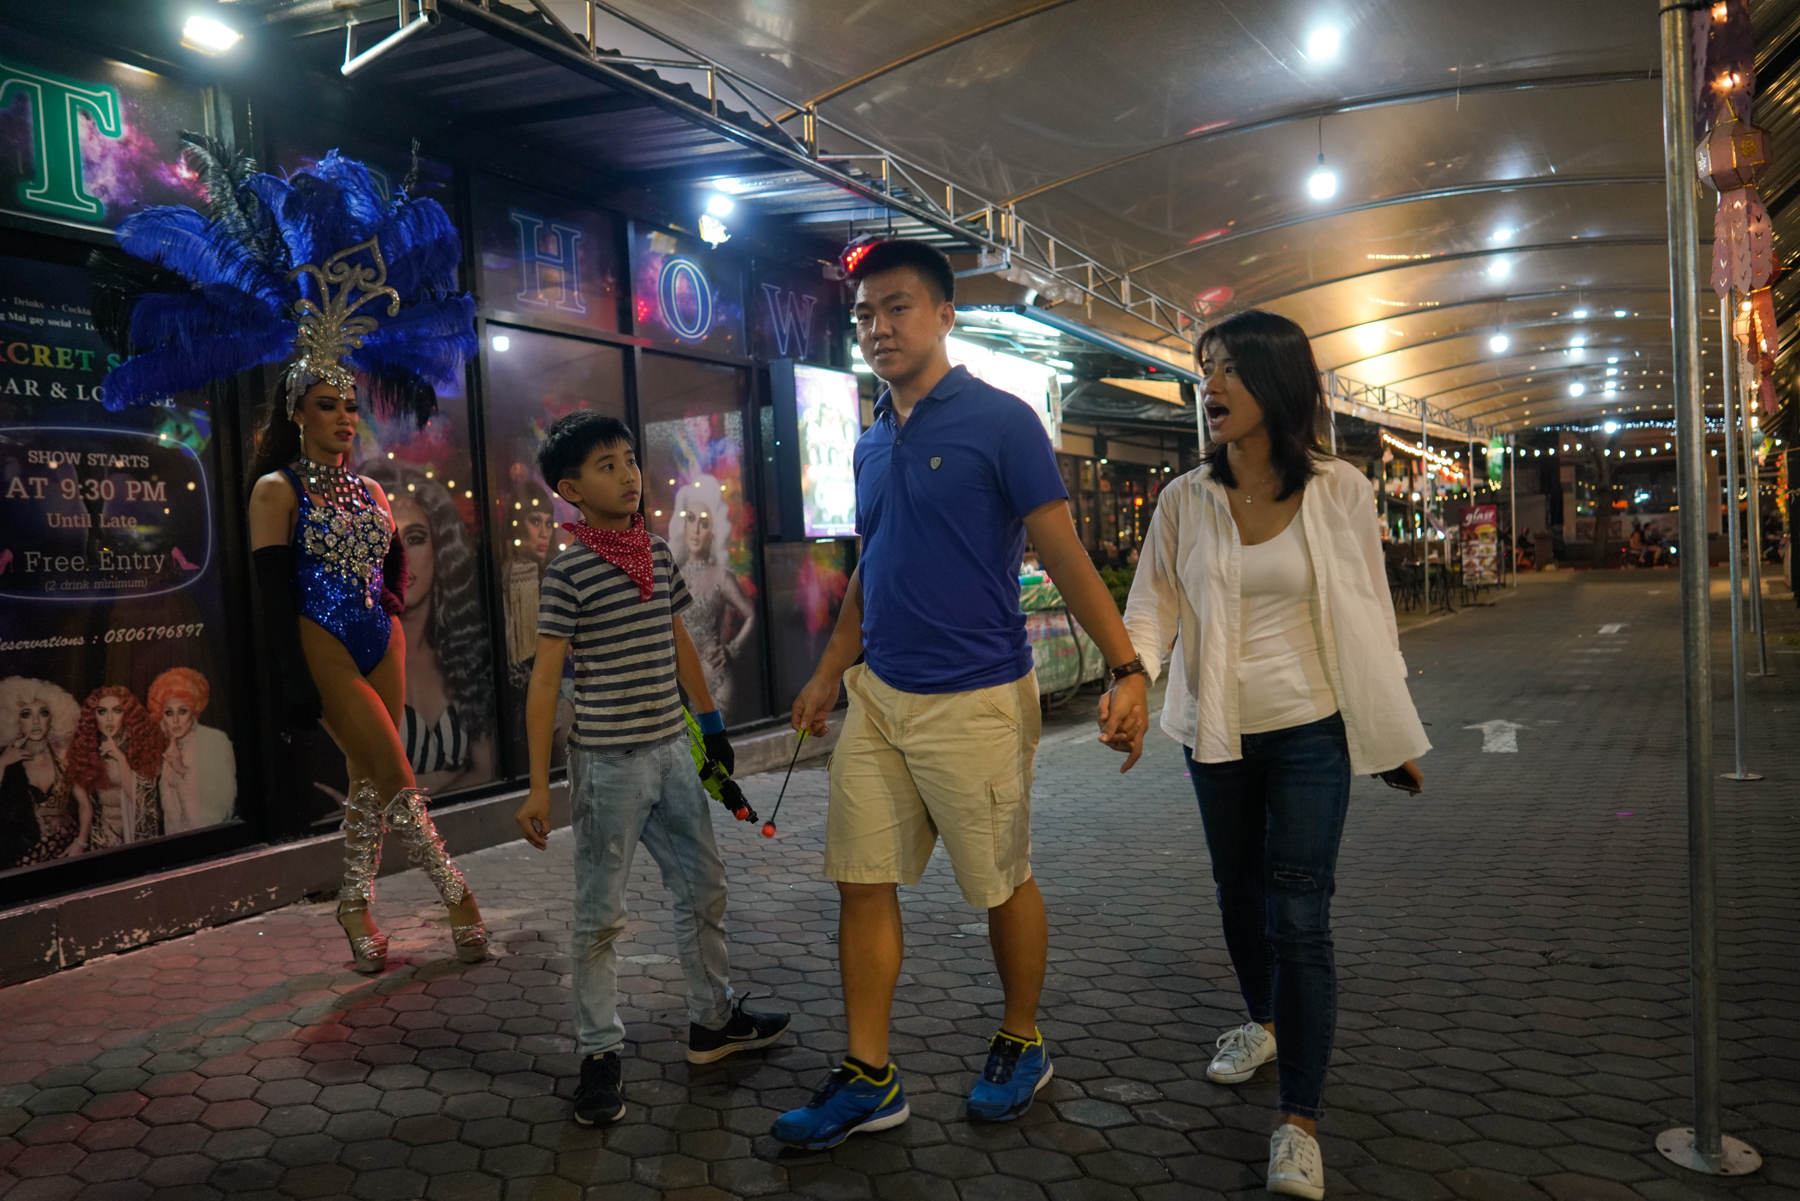 Echo and her family walk home after closing their restaurant for the day in Chiang Mai, January 18, 2019. After Echo's marriage failed in China in 2014, she moved to Chiang Mai with her son, Billy, who was only four. She believes Billy's education in Thailand has made him more brave and outgoing. On January 5 this year, Echo married her boyfriend, Philip, a Thai man of Chinese ancestry.